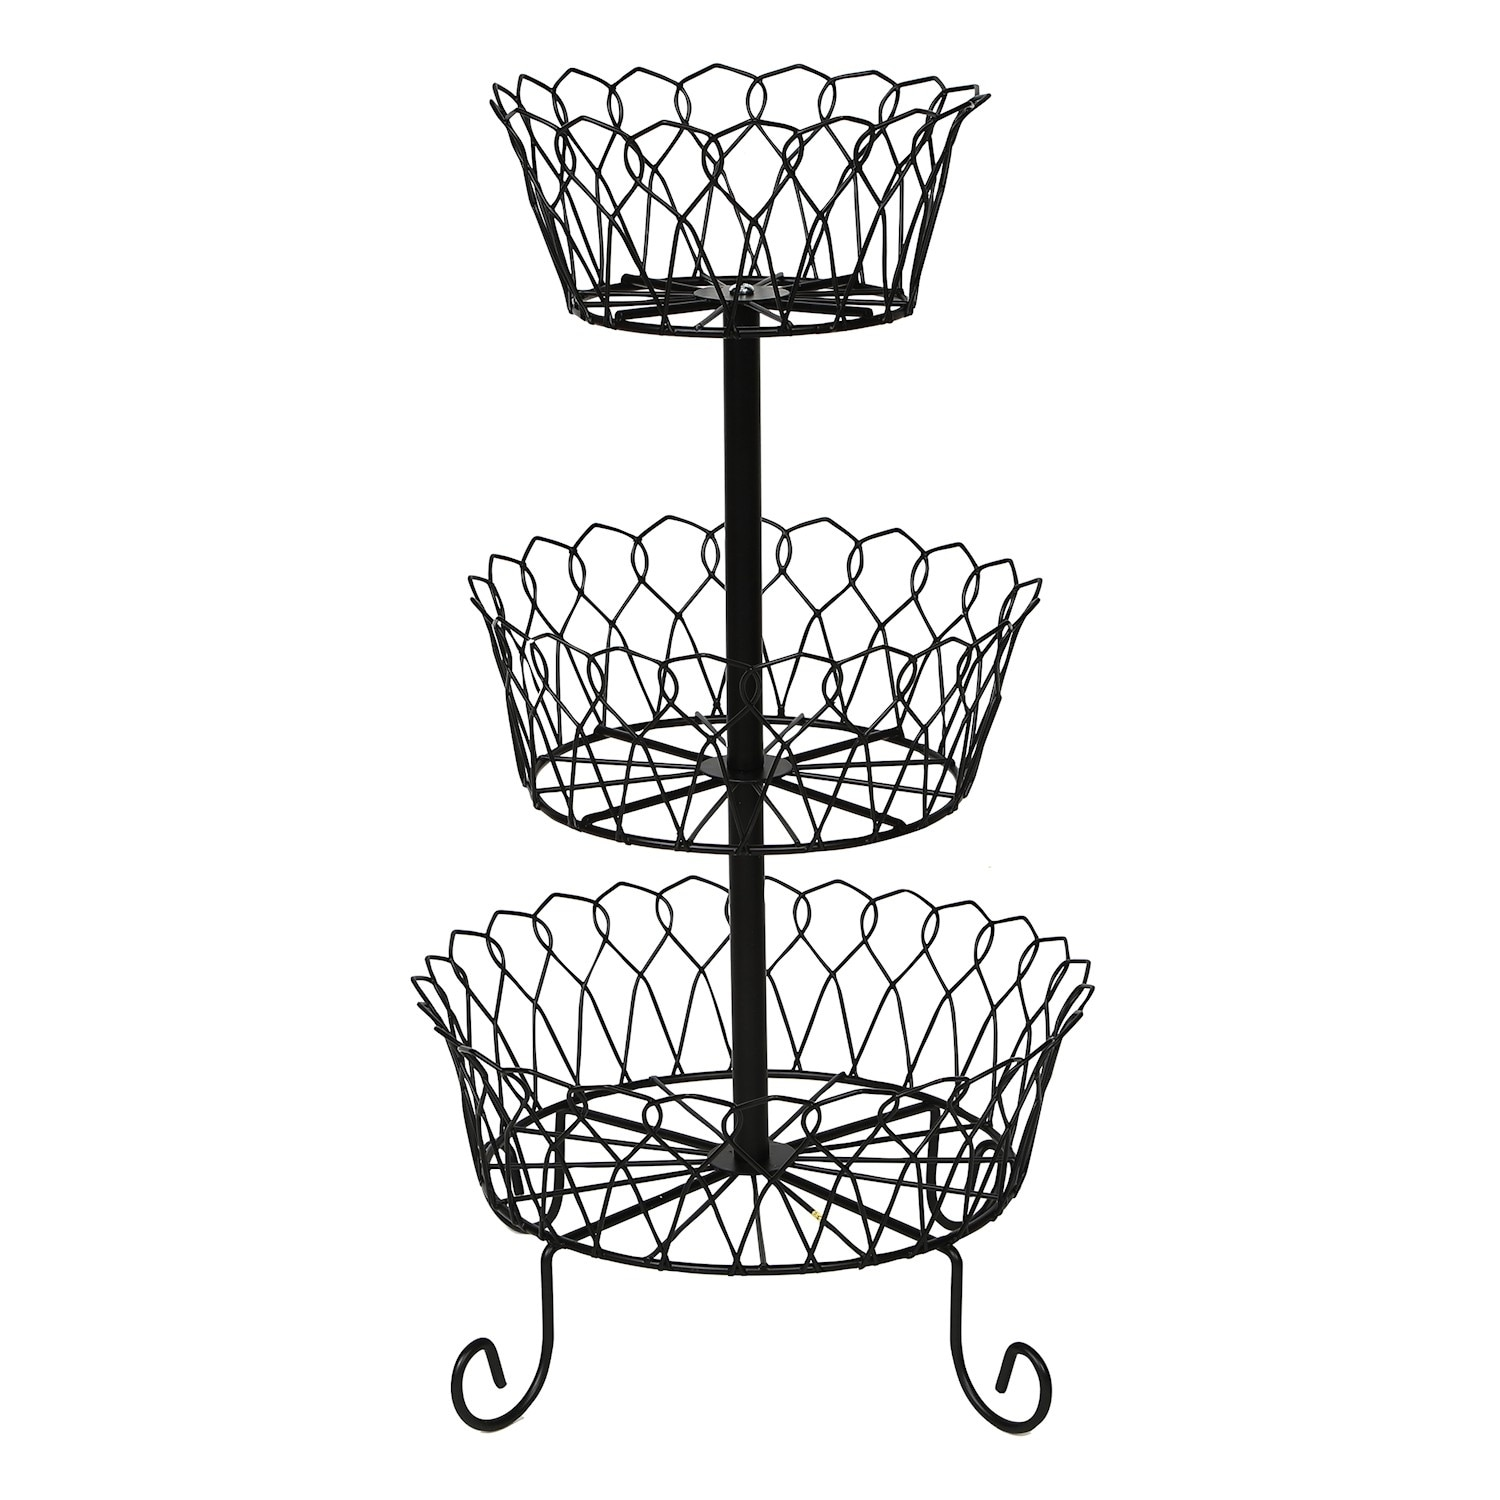 Wire Fruit Bowls Home District 3 Tier Iron Fruit Basket Stand Footed Wire Graduated Food Storage Bowls For Countertop And Dining Table Metal